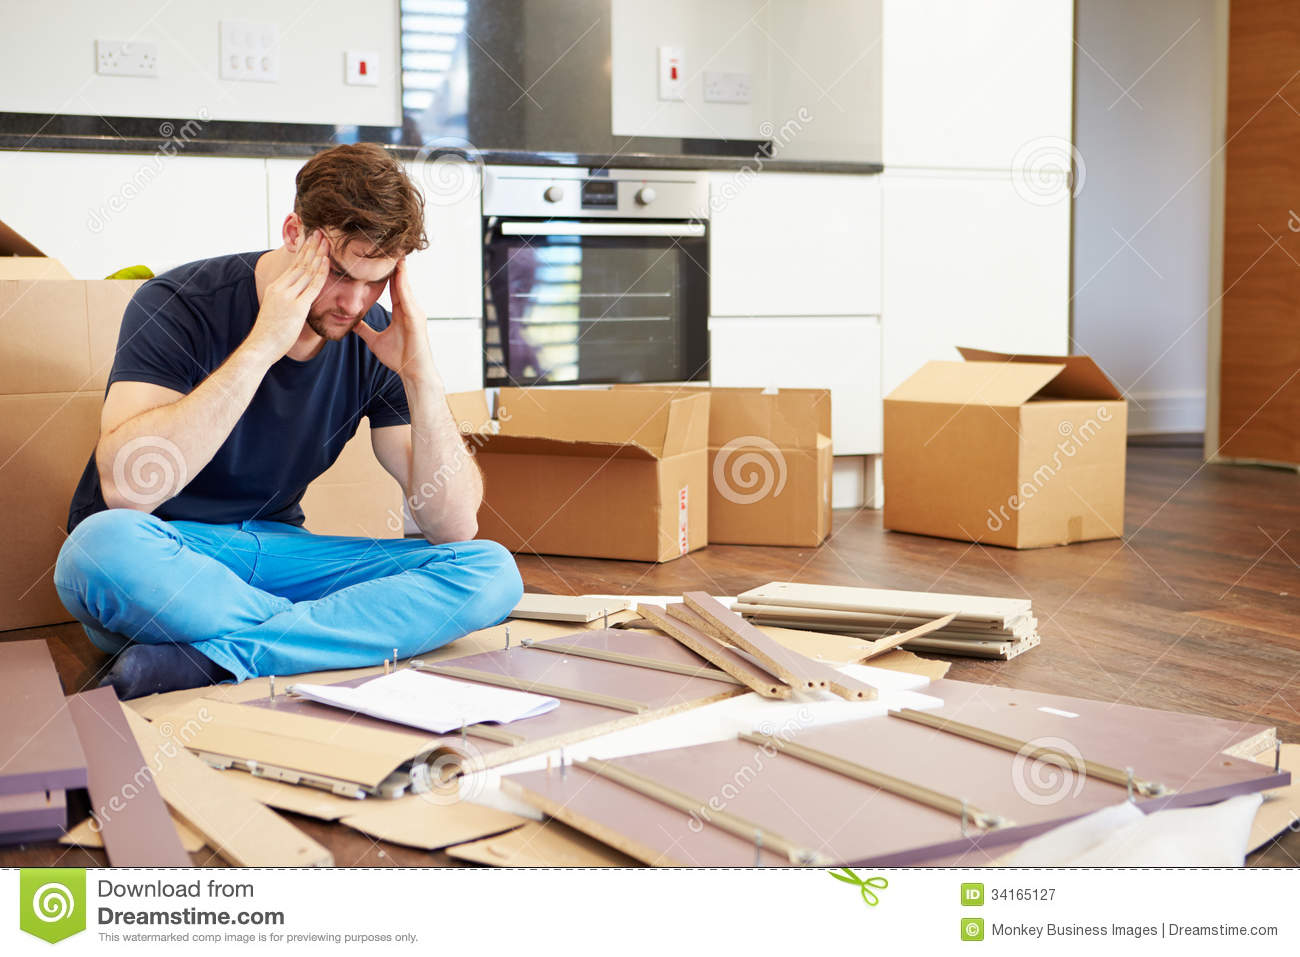 Frustrated Man Putting Together Self Assembly Furniture Royalty Free Stock Photography Image